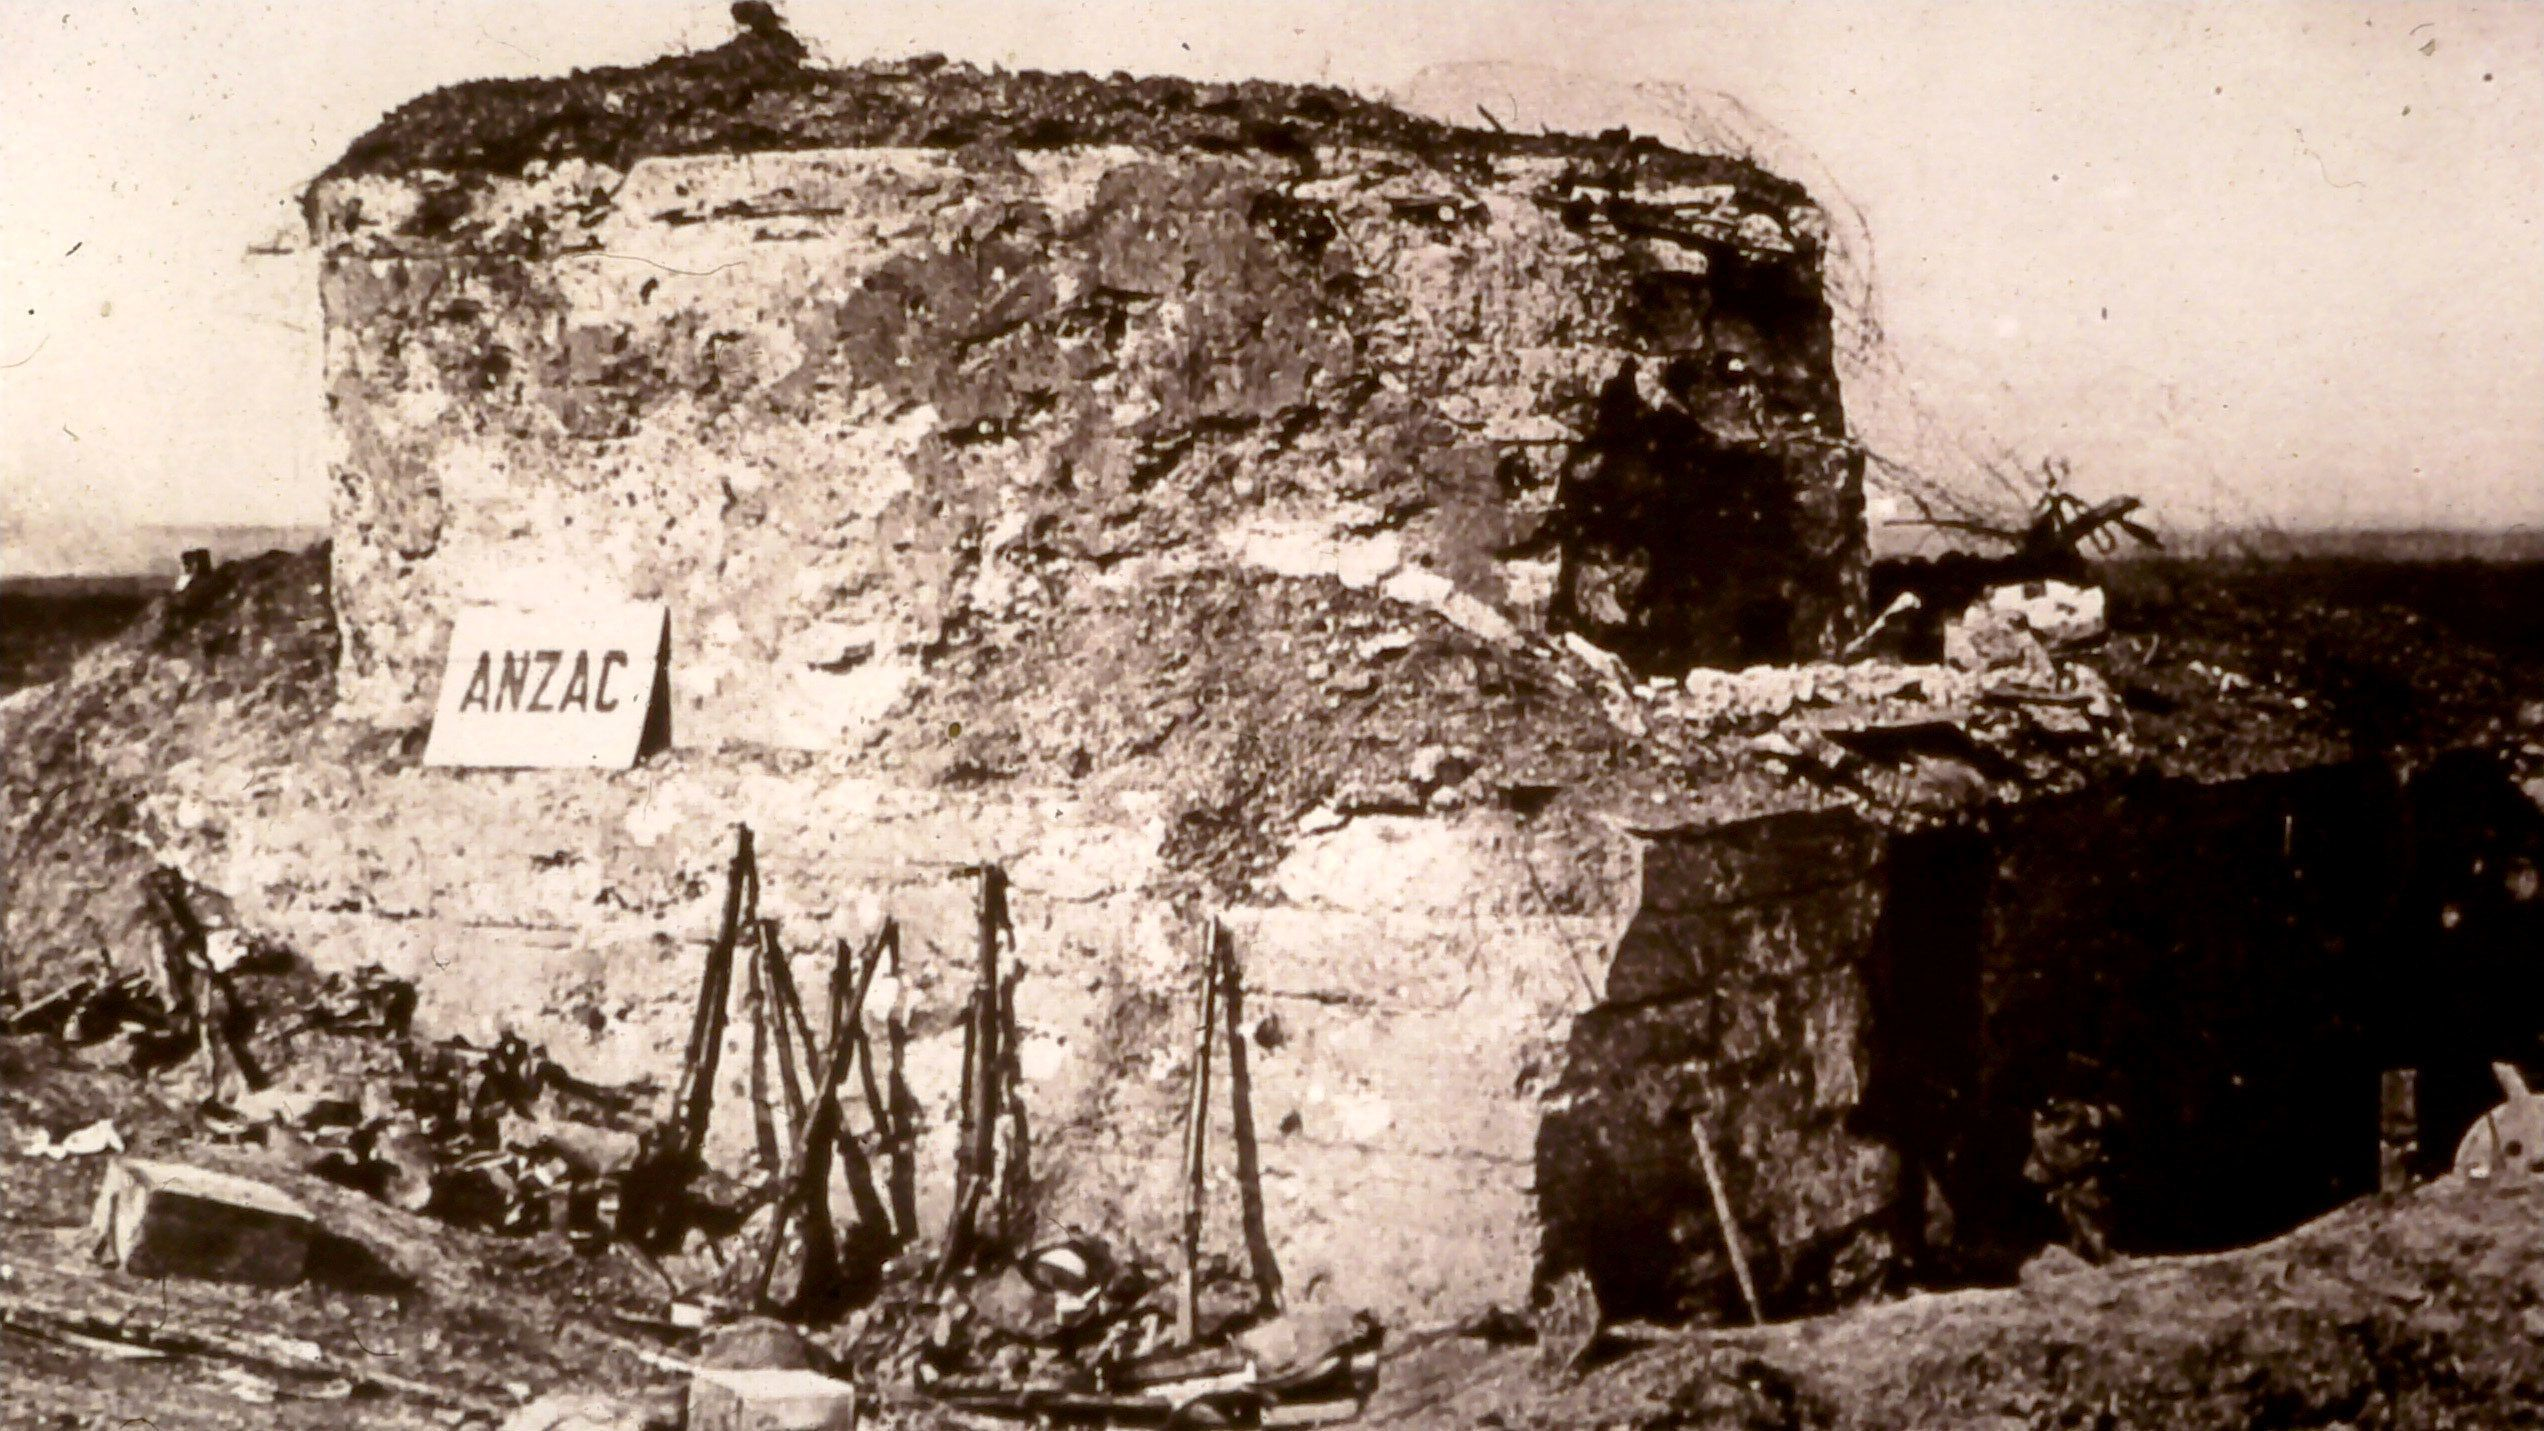 Historical photo of a WWI bunker in Belgium